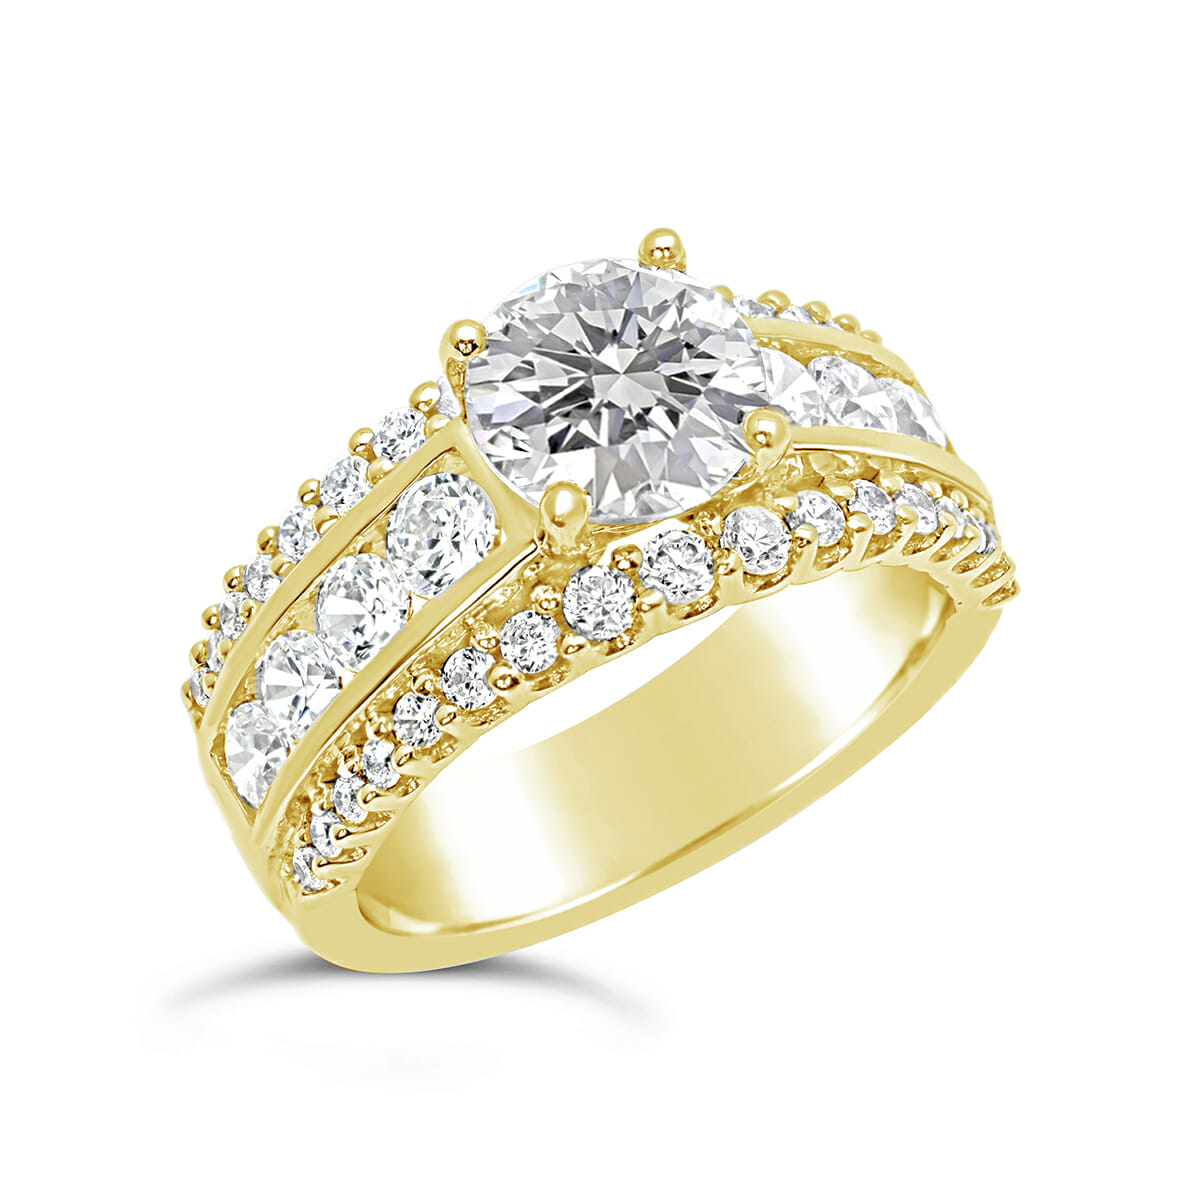 channel brilliant total claw open round shape white approx with shoulders weight set v gold solitaire diamond